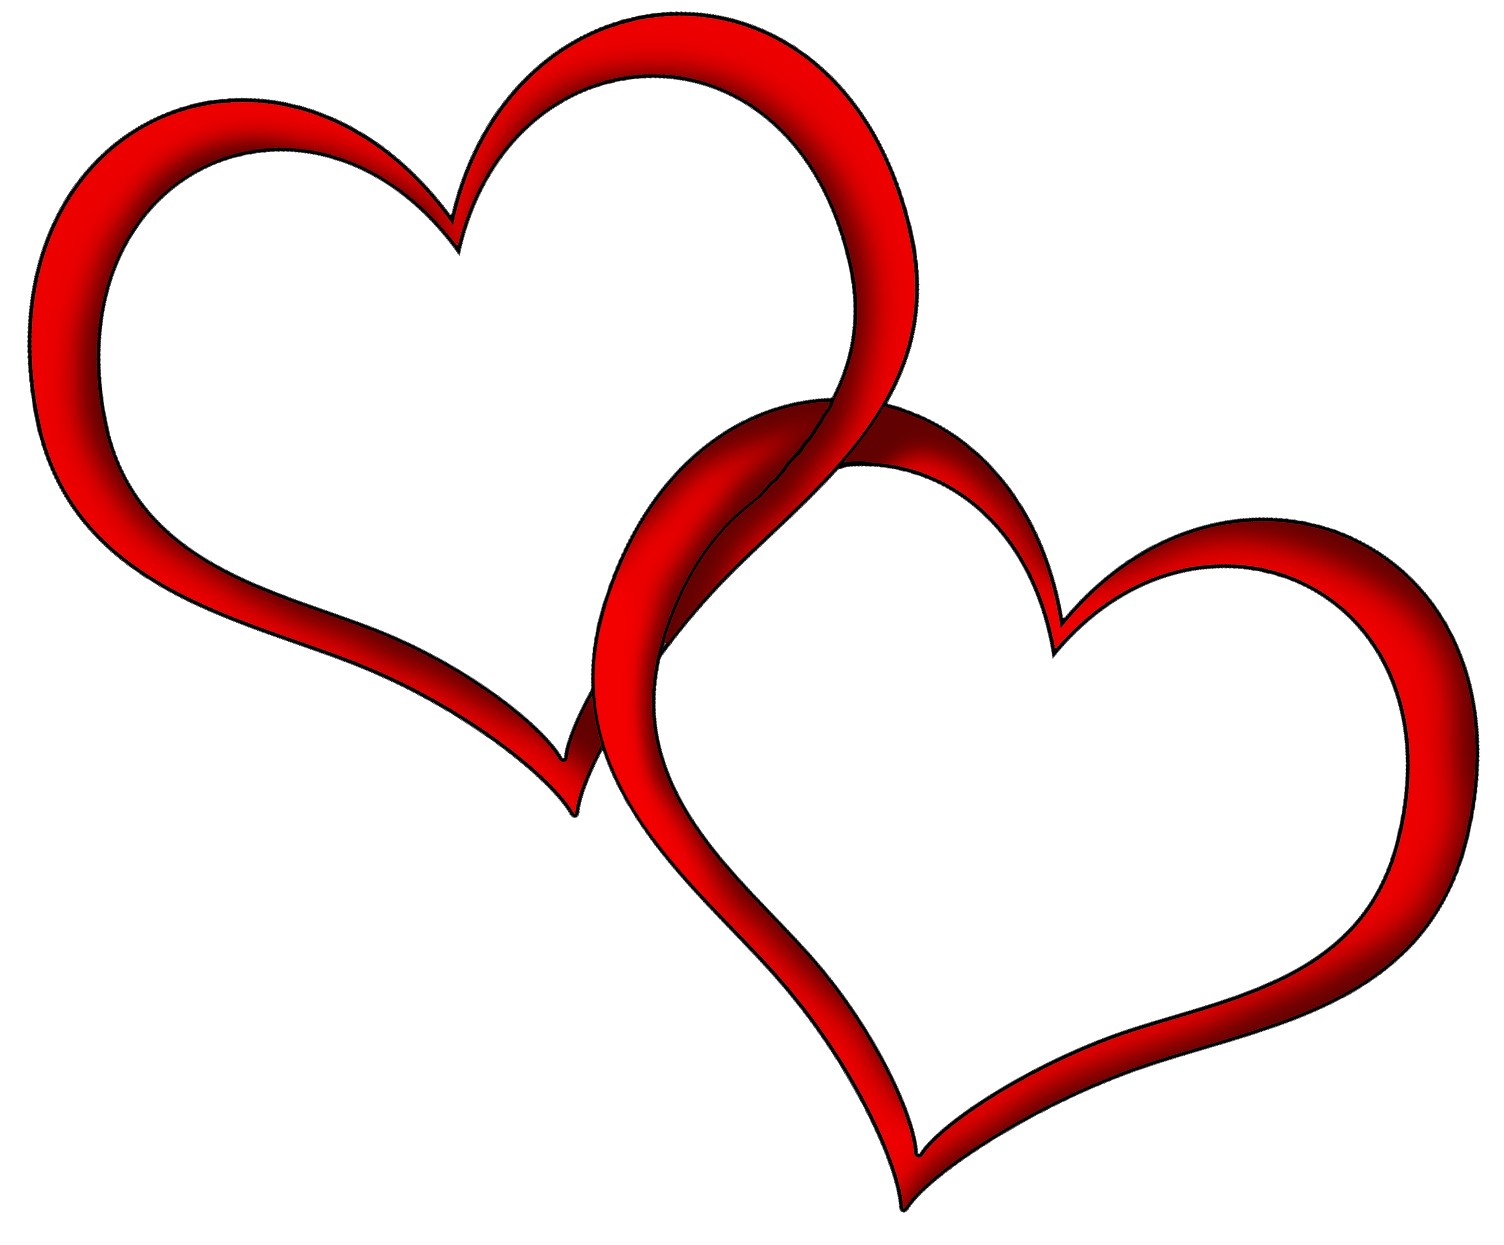 Red hearts clip art. Heat clipart couple heart